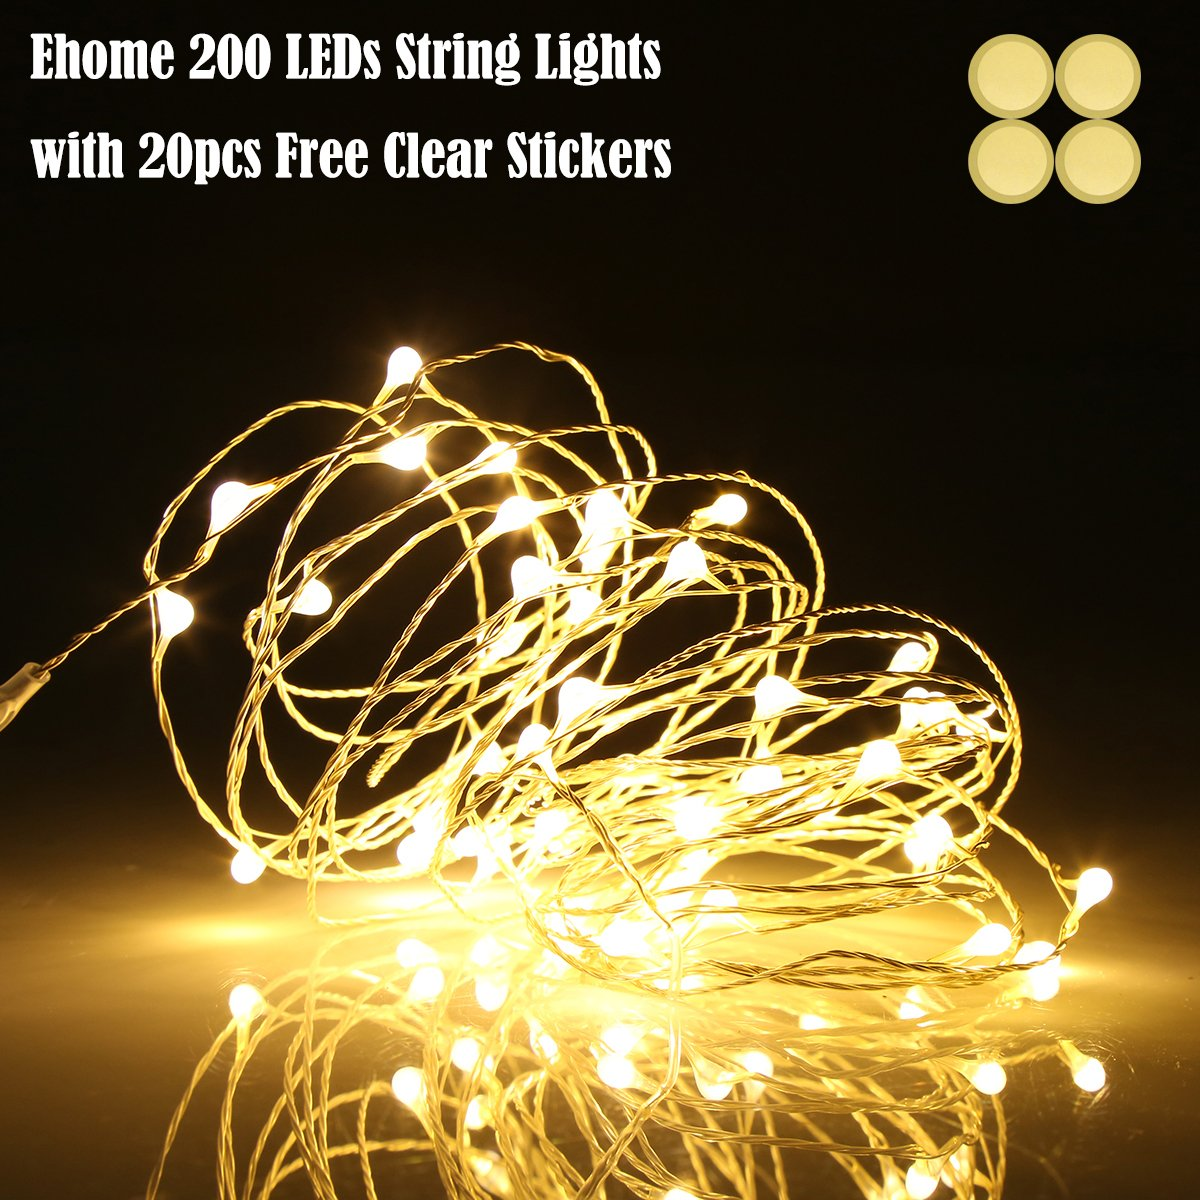 Ehome LED String Lights, Fairy Lights, Starry Lights 66ft 200 LEDs Silver Wire Lights, Waterproof Decorative Lights for Bedroom, Indoor Wedding Parties Christmas Lights with USB Interface(Warm white)